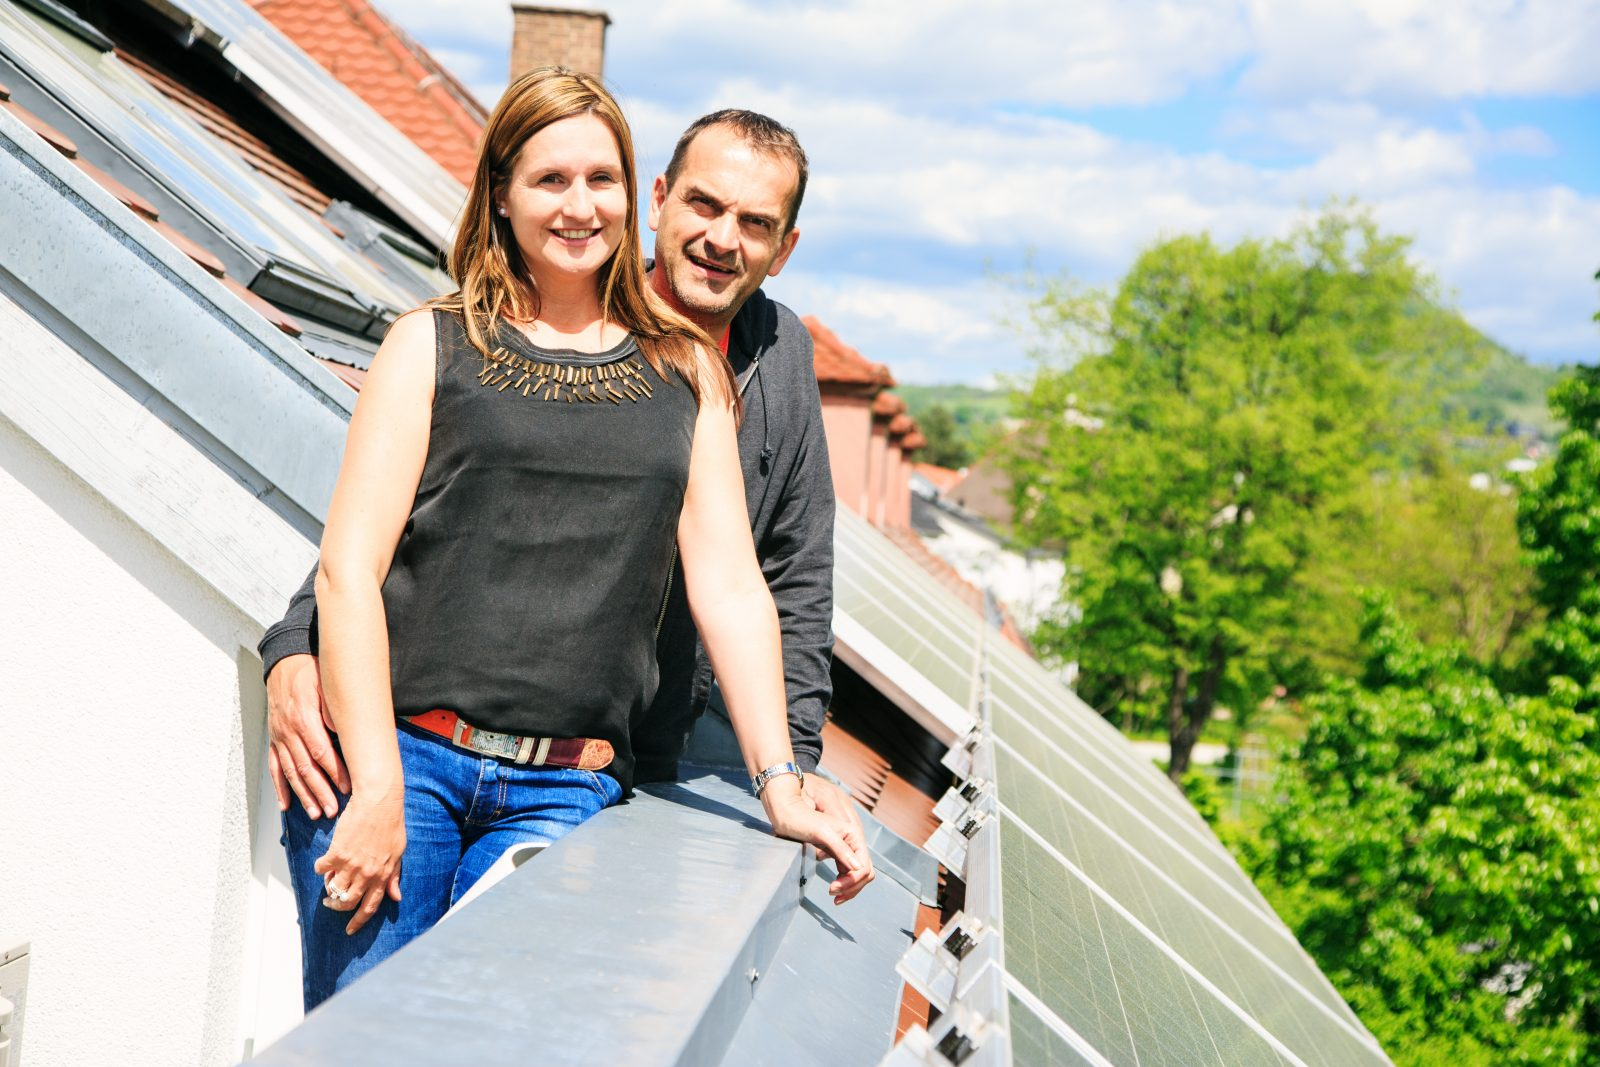 4.1 percent resell value increase for my home with solar